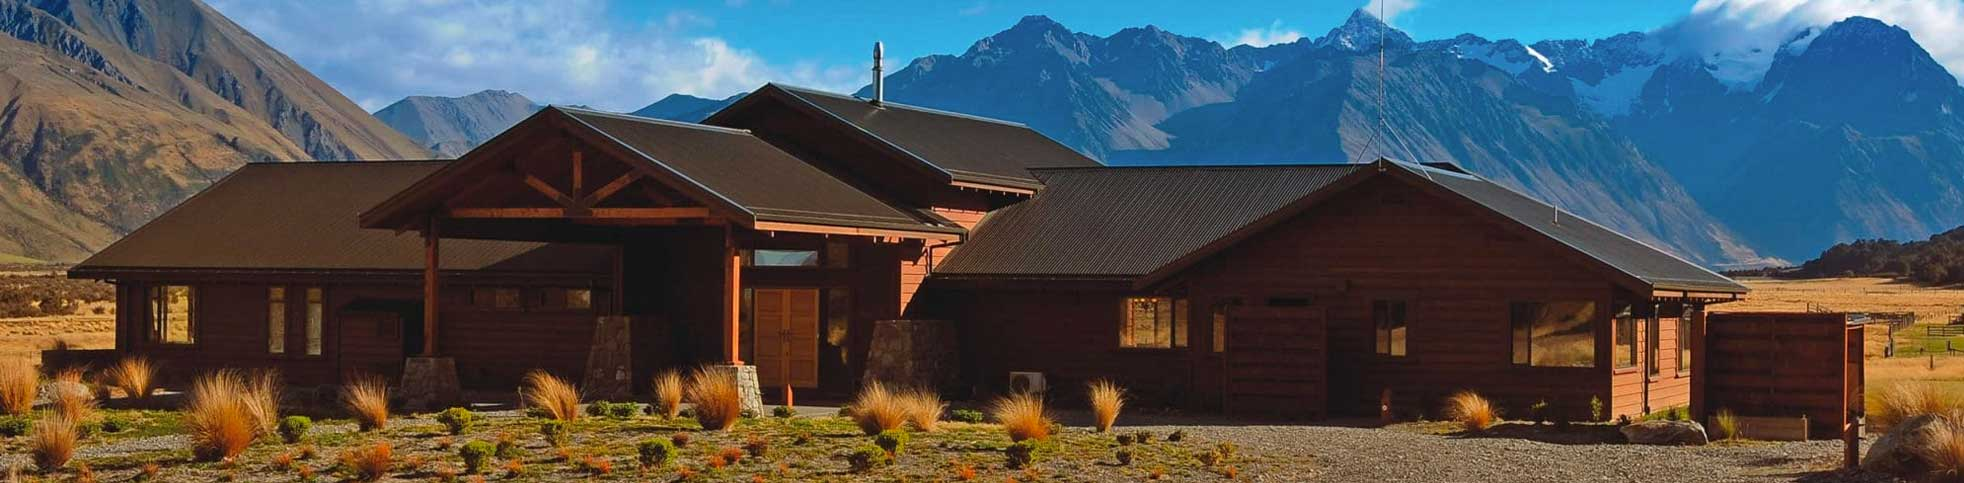 New Zealand Hunting Lodge